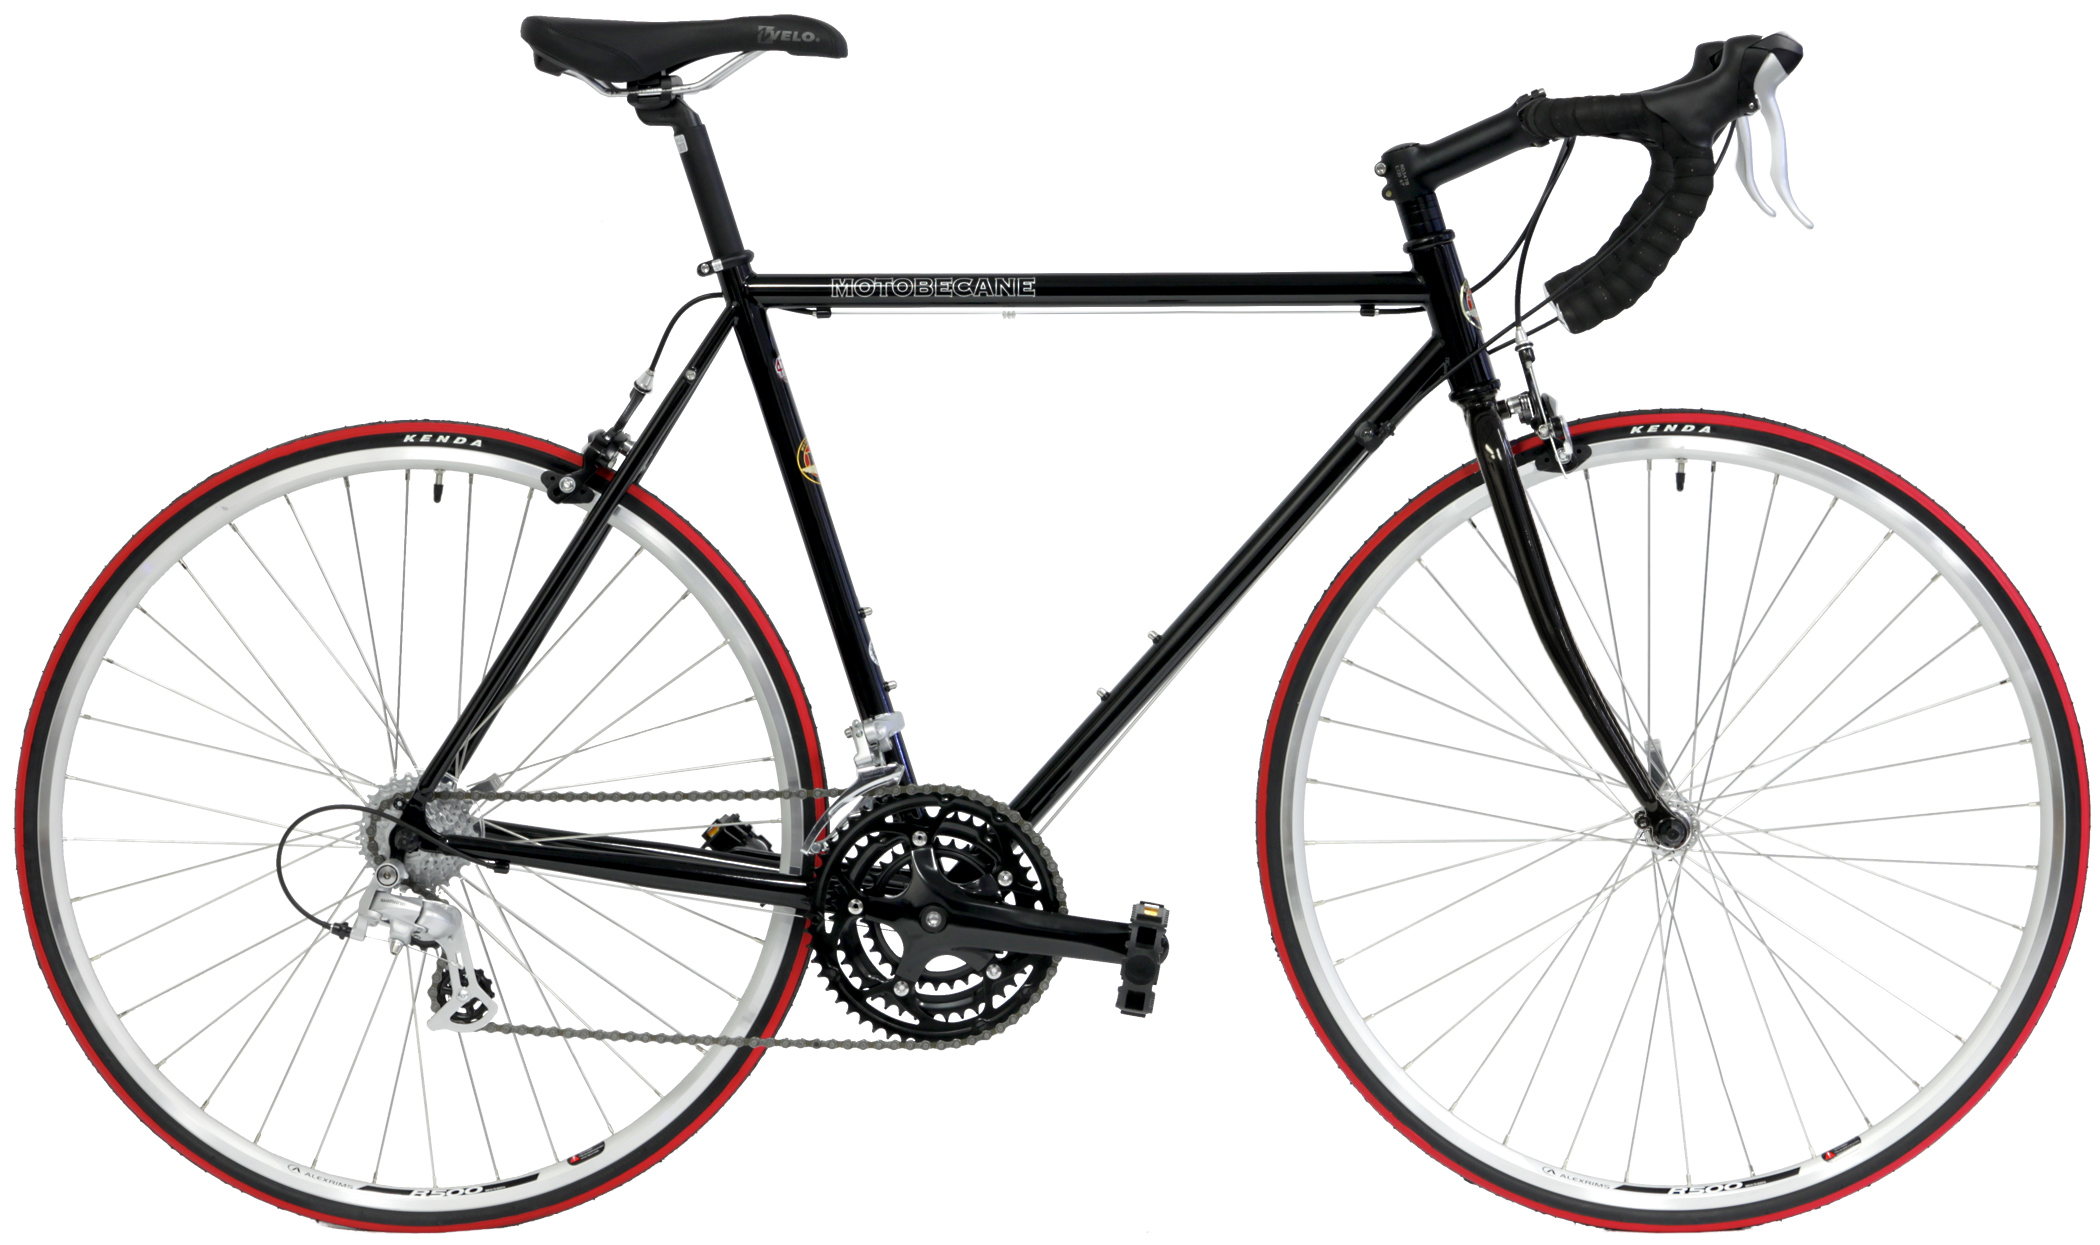 Bikesdirect Motobecane Reviews Motobecane Super Mirage Road